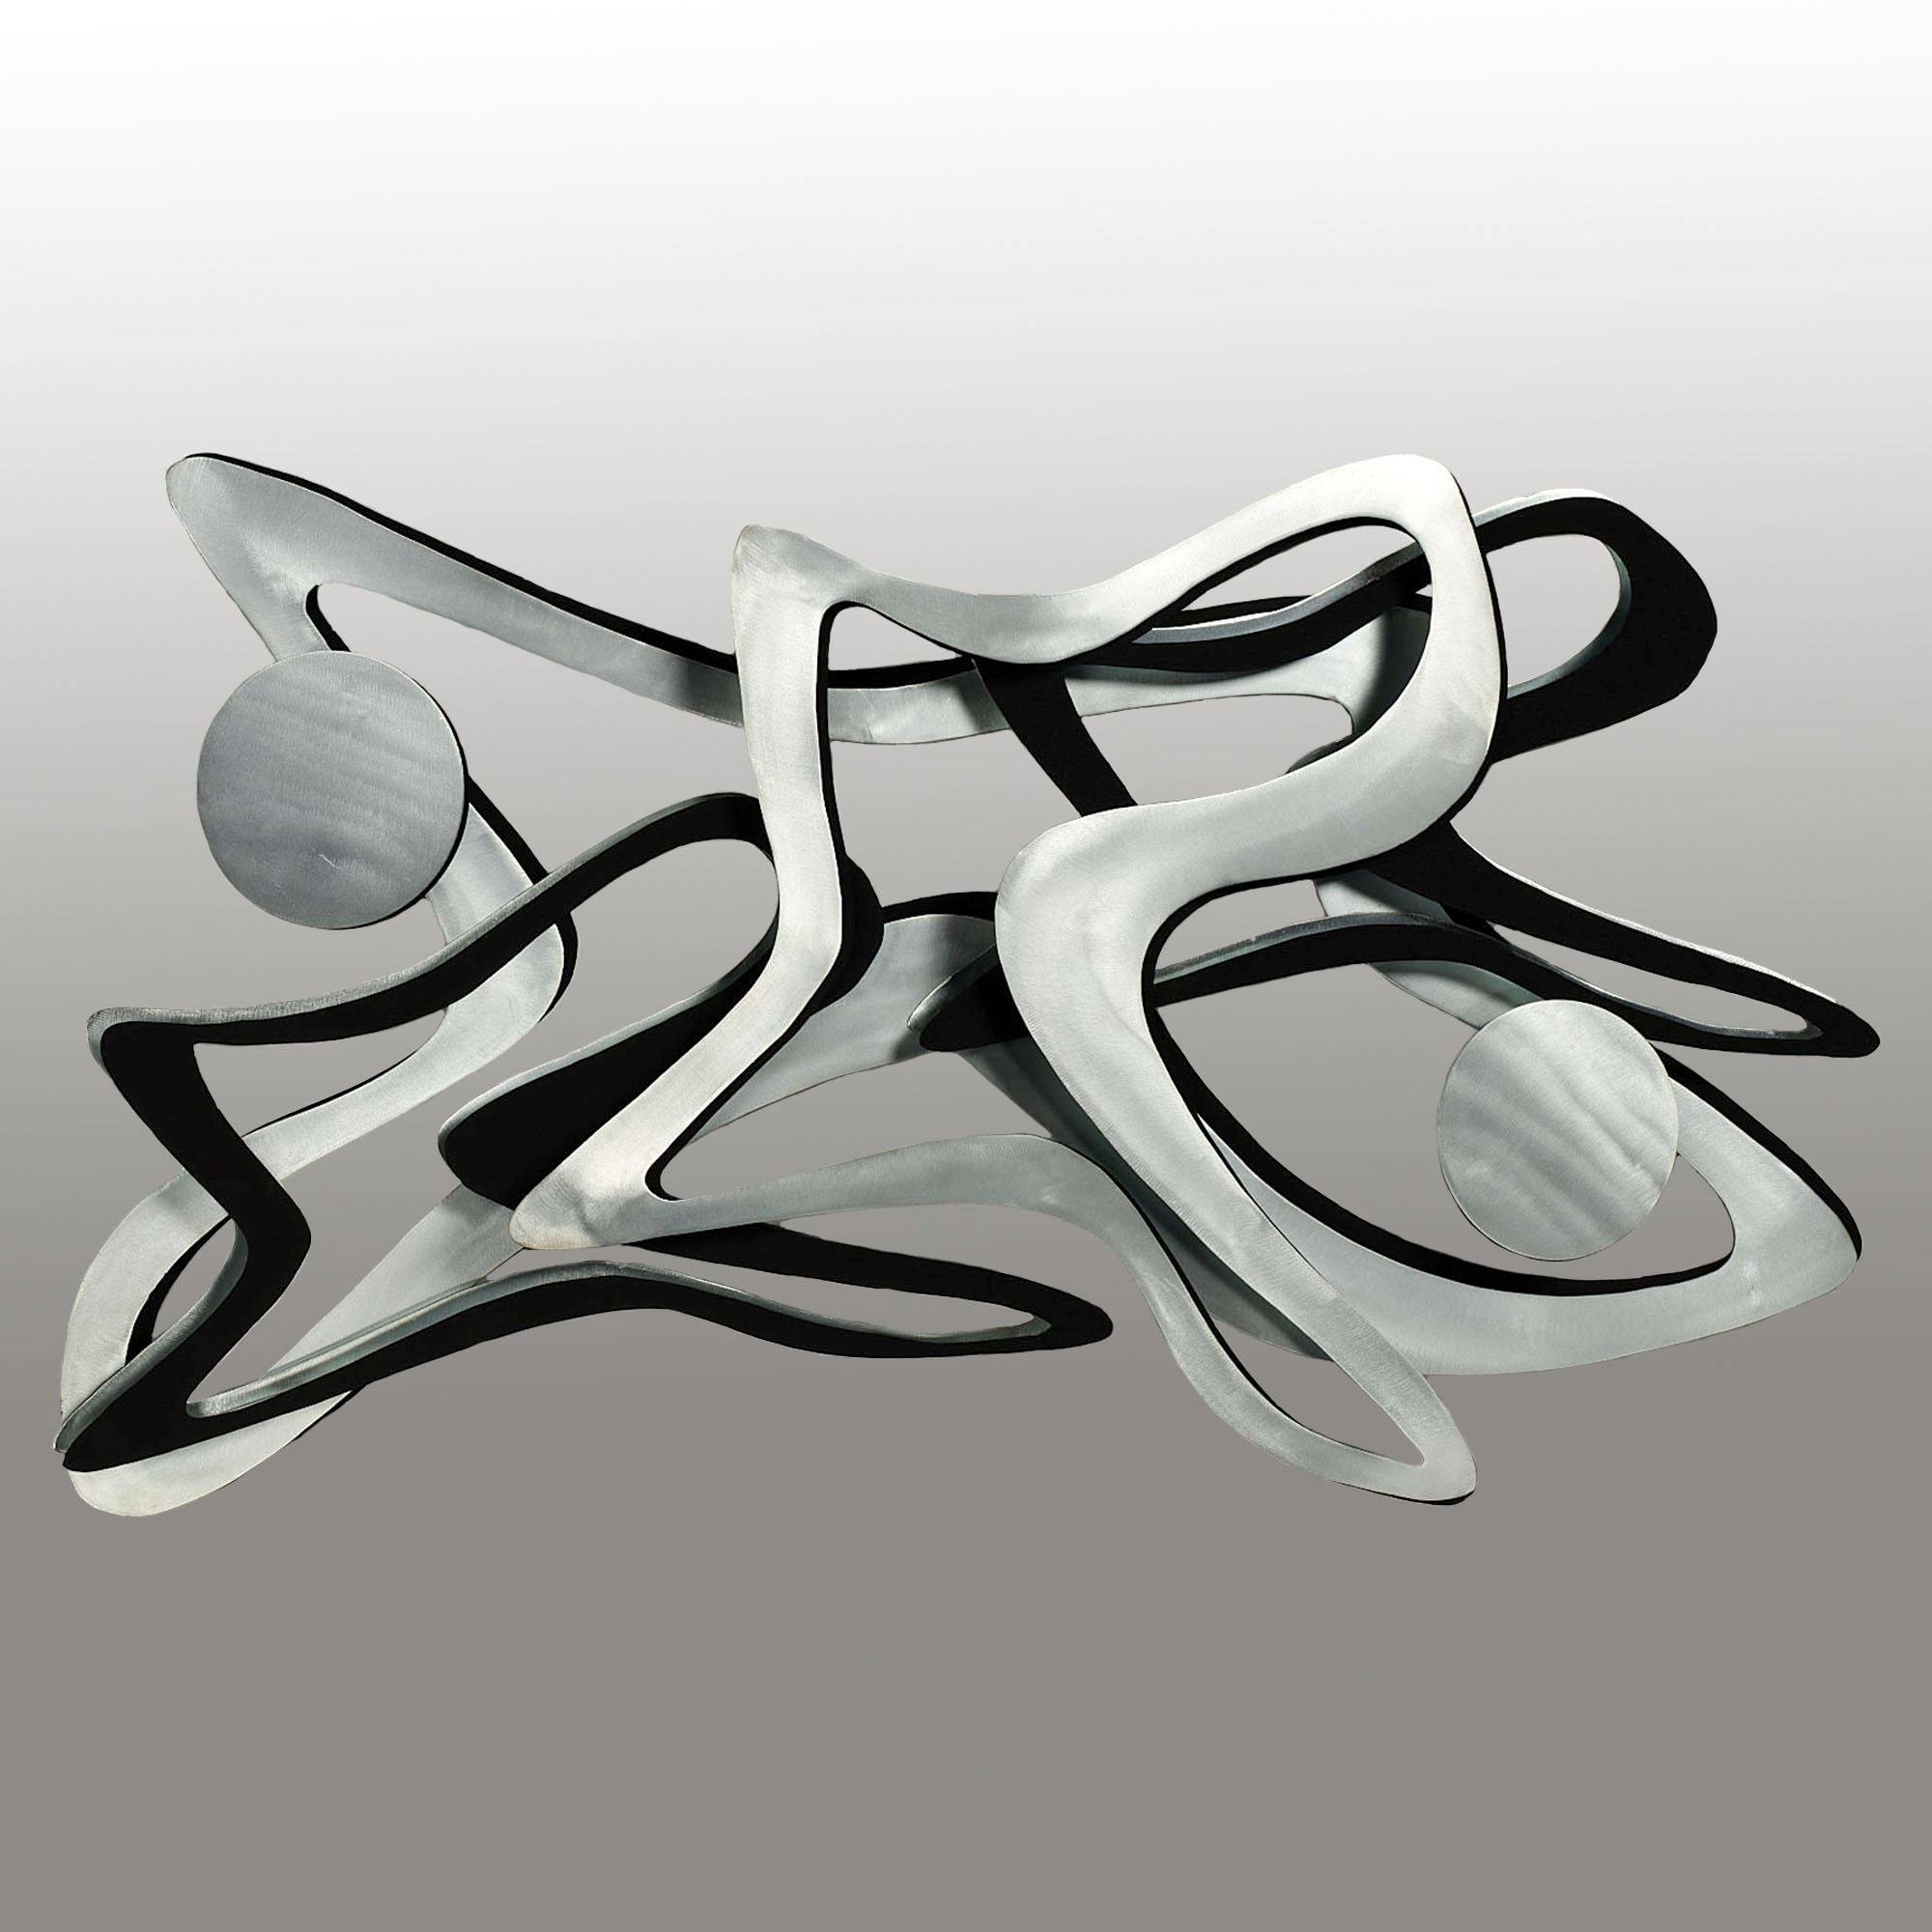 Rave Metal Wall Sculpture For Recent Contemporary Metal Wall Art Sculptures (View 4 of 20)